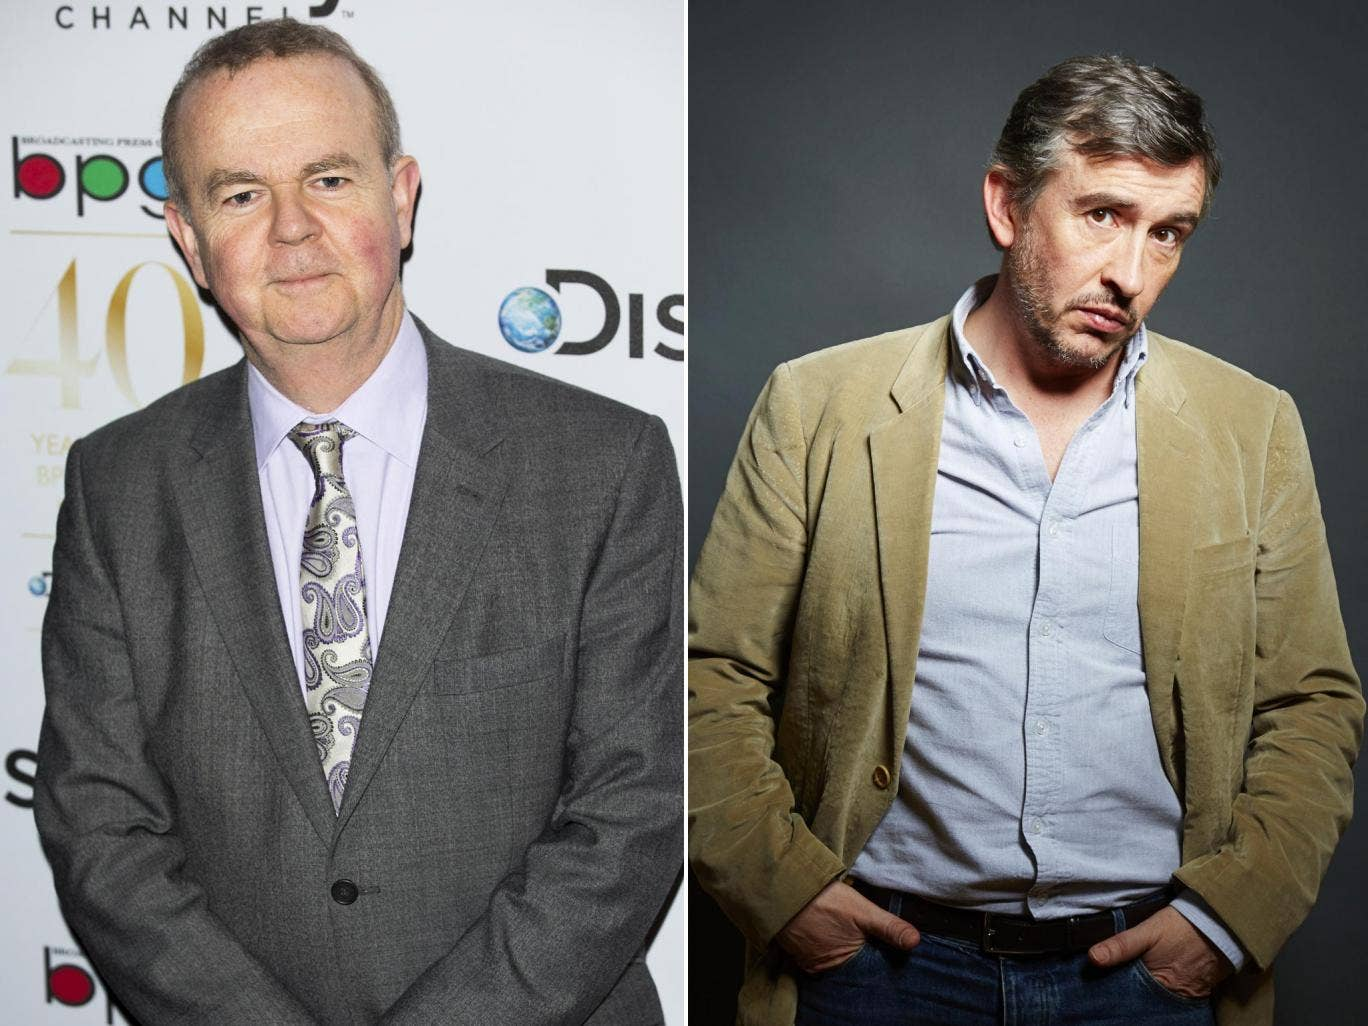 Hislop (left) did not comment but his deputy said Steve Coogan had no record of supporting free speech